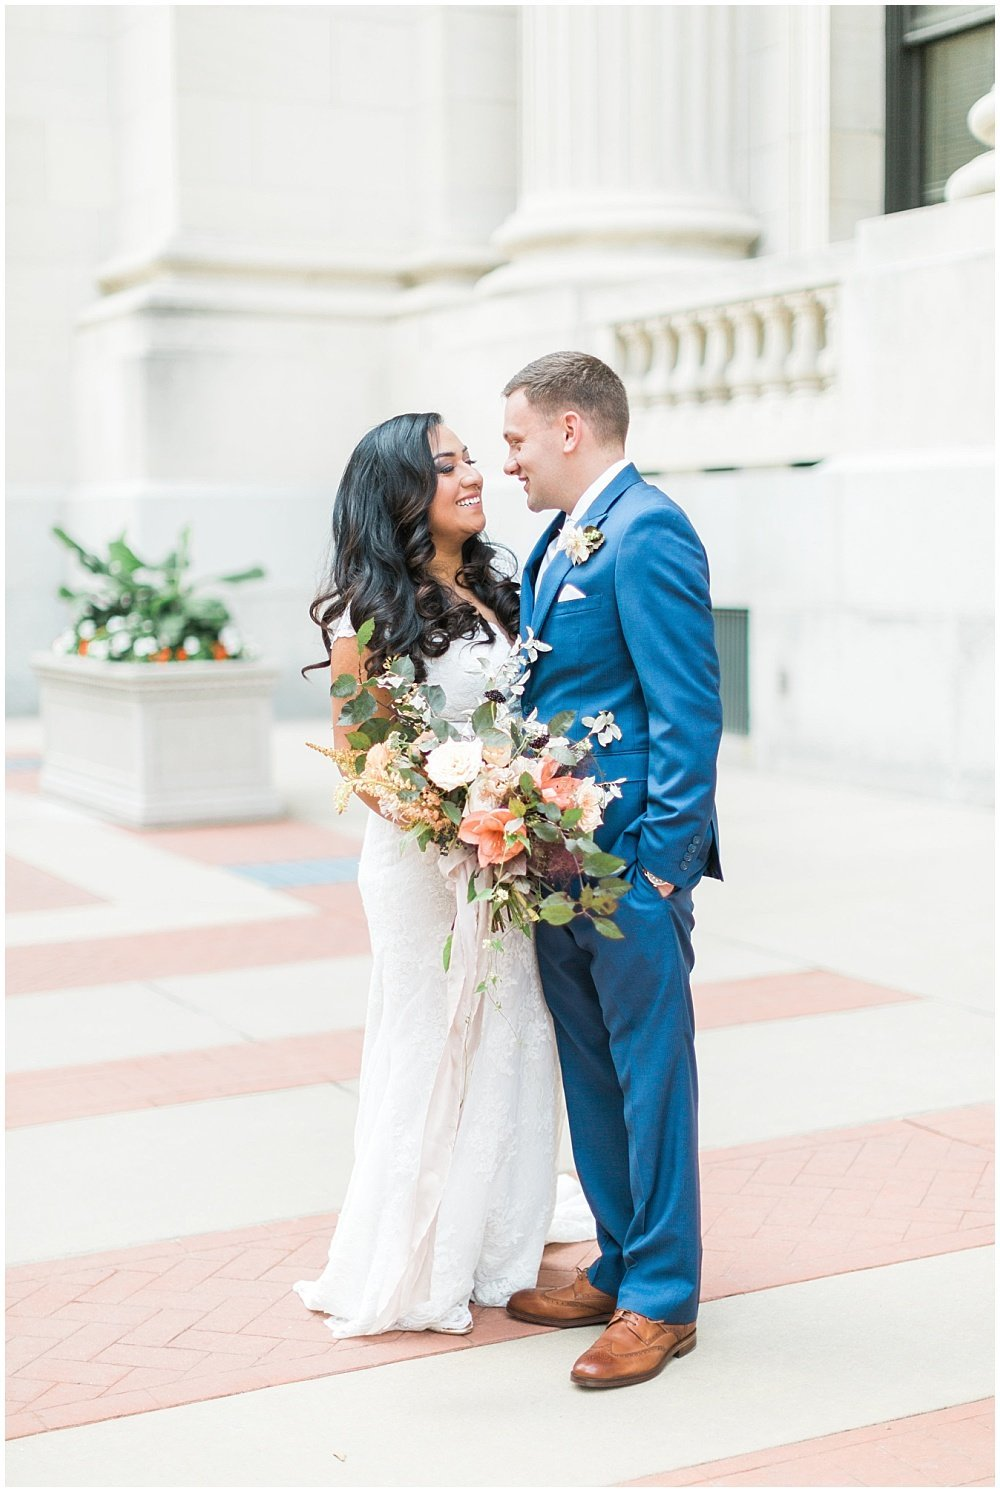 Summer-Mexican-Inspired-Gold-And-Floral-Crowne-Plaza-Indianapolis-Downtown-Union-Station-Wedding-Cory-Jackie-Wedding-Photographers-Jessica-Dum-Wedding-Coordination_photo___0046